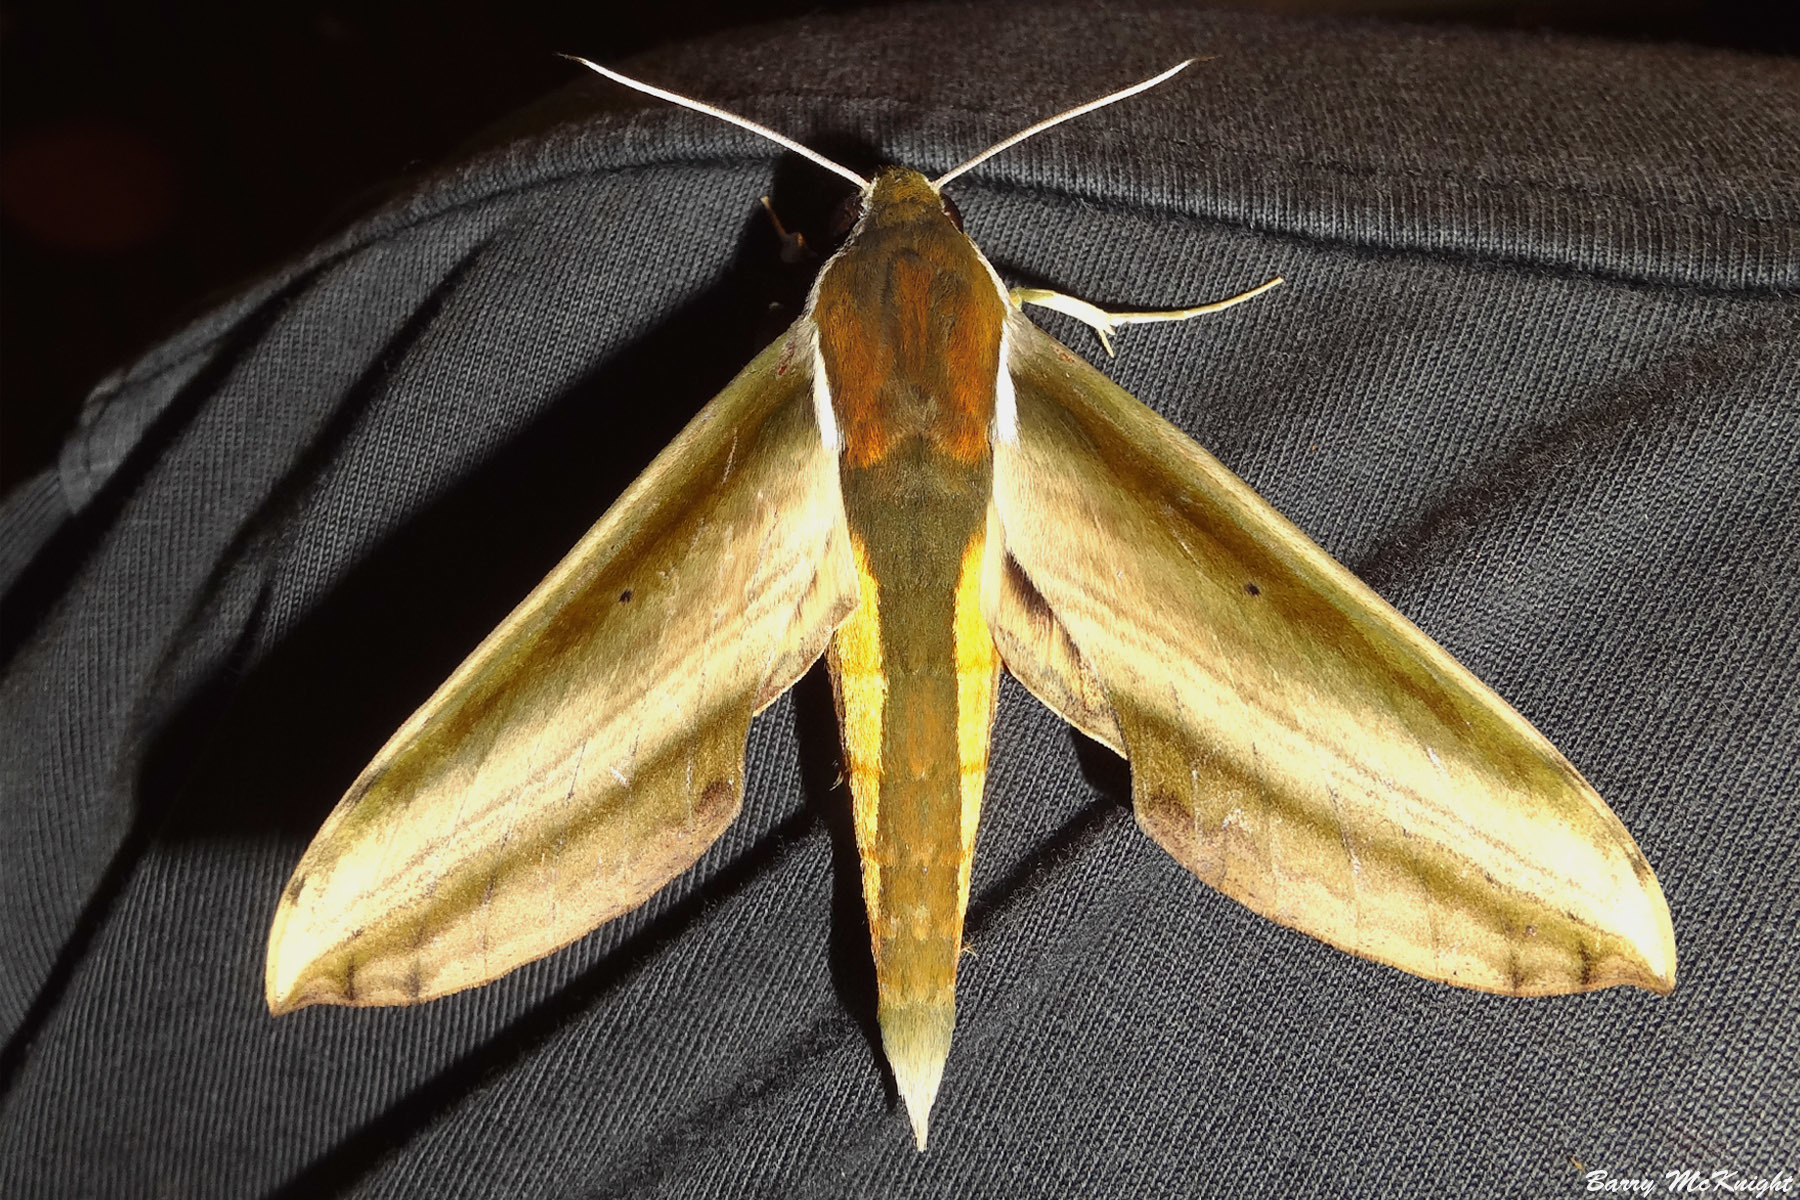 Moth #929 - Theretra nessus